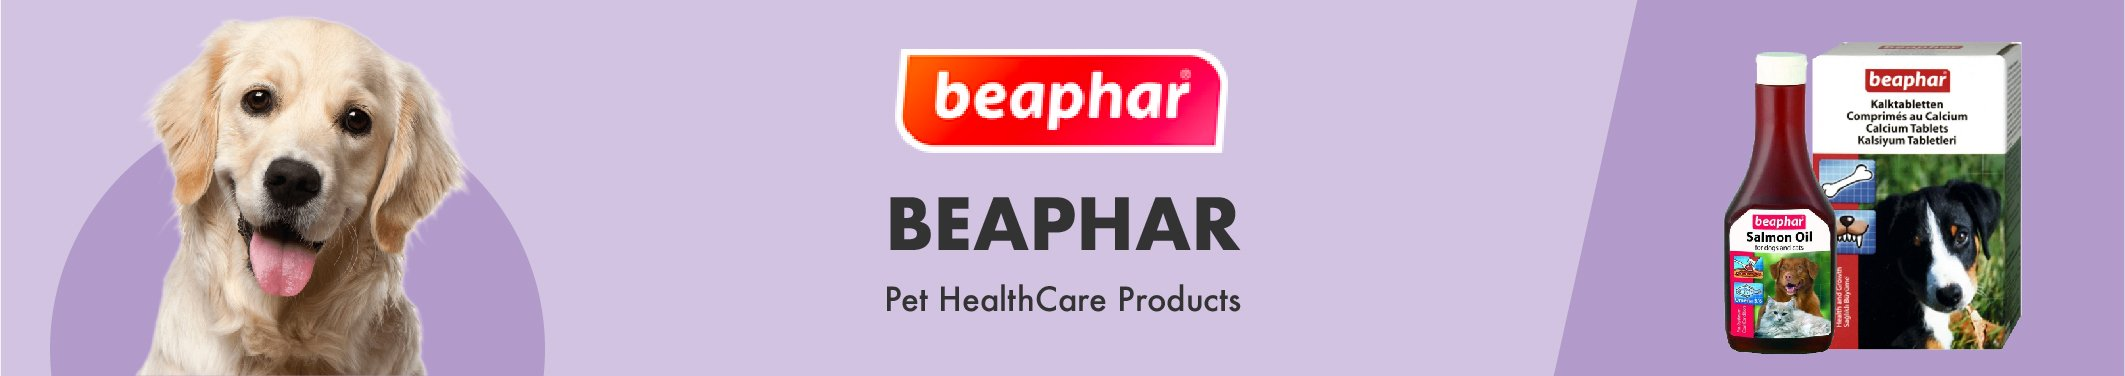 Beaphar Pet HealthCare Products